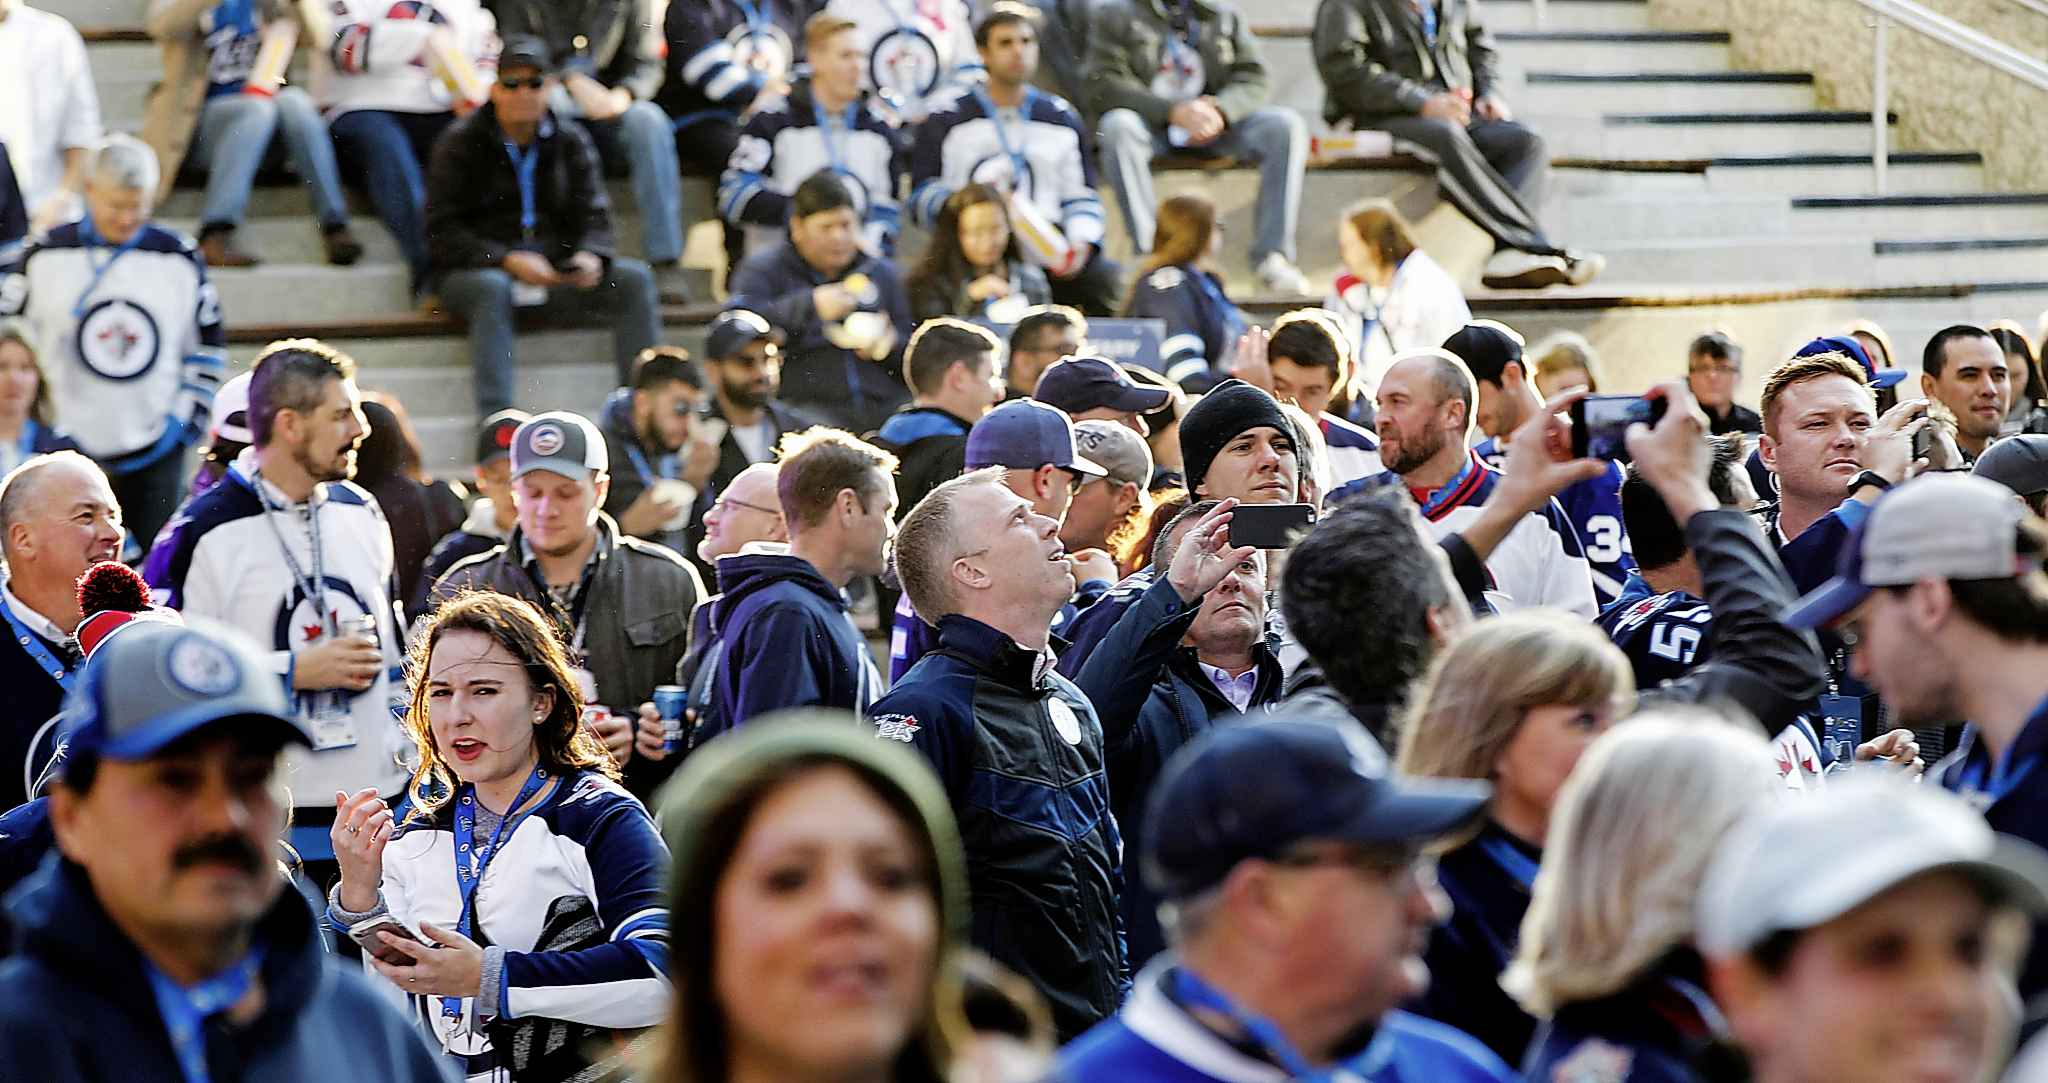 Winnipeg Jets ticket holders check out True North Square during a free pre-game concert headlined by Randy Bachman. (Phil Hossack / Winnipeg Free Press)